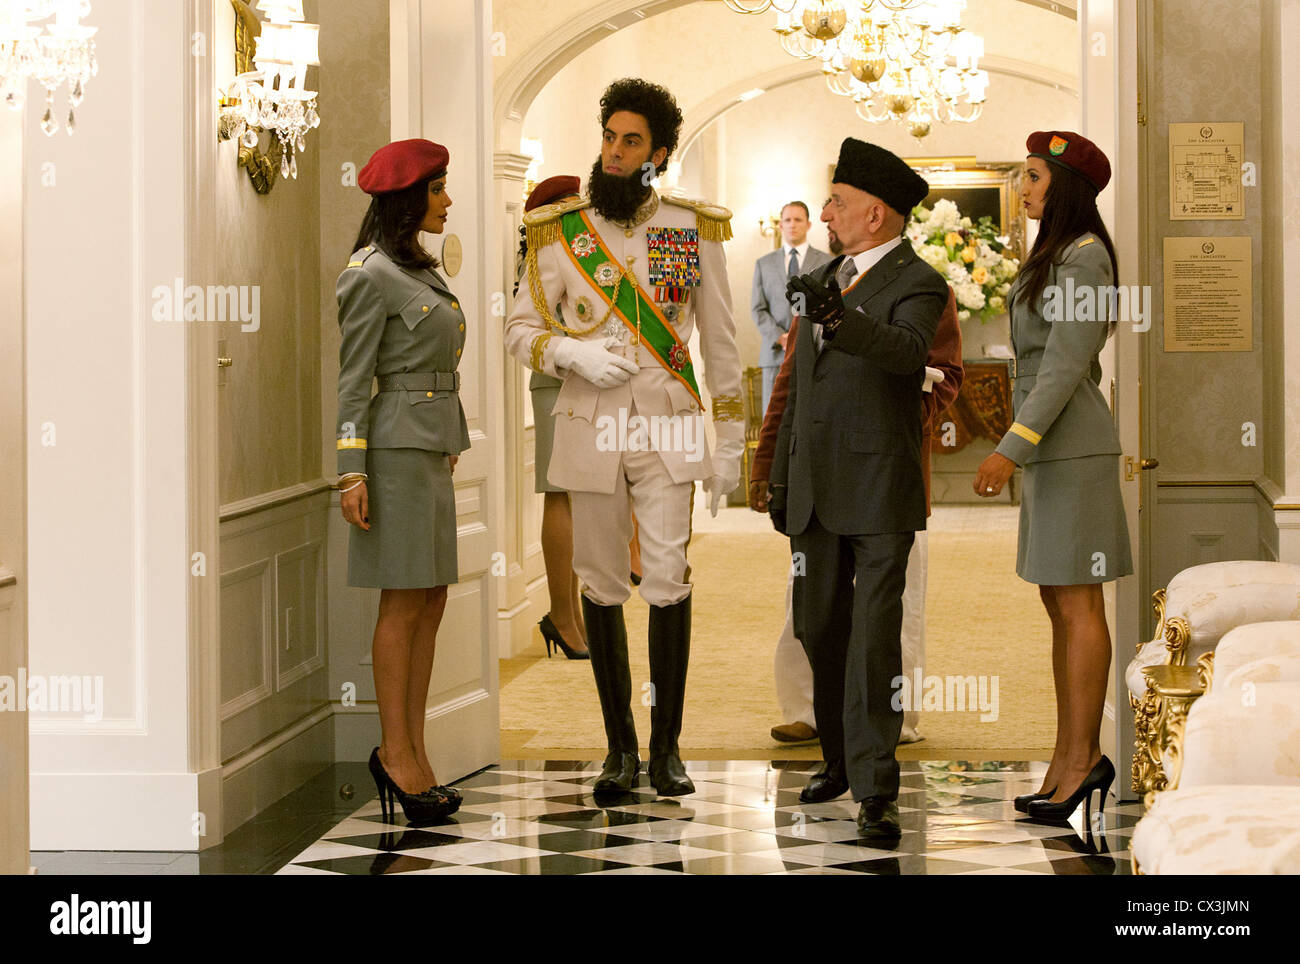 Sasha Baron Cohen is going to Moscow for the Golden Woodpecker 25.02.2010 81